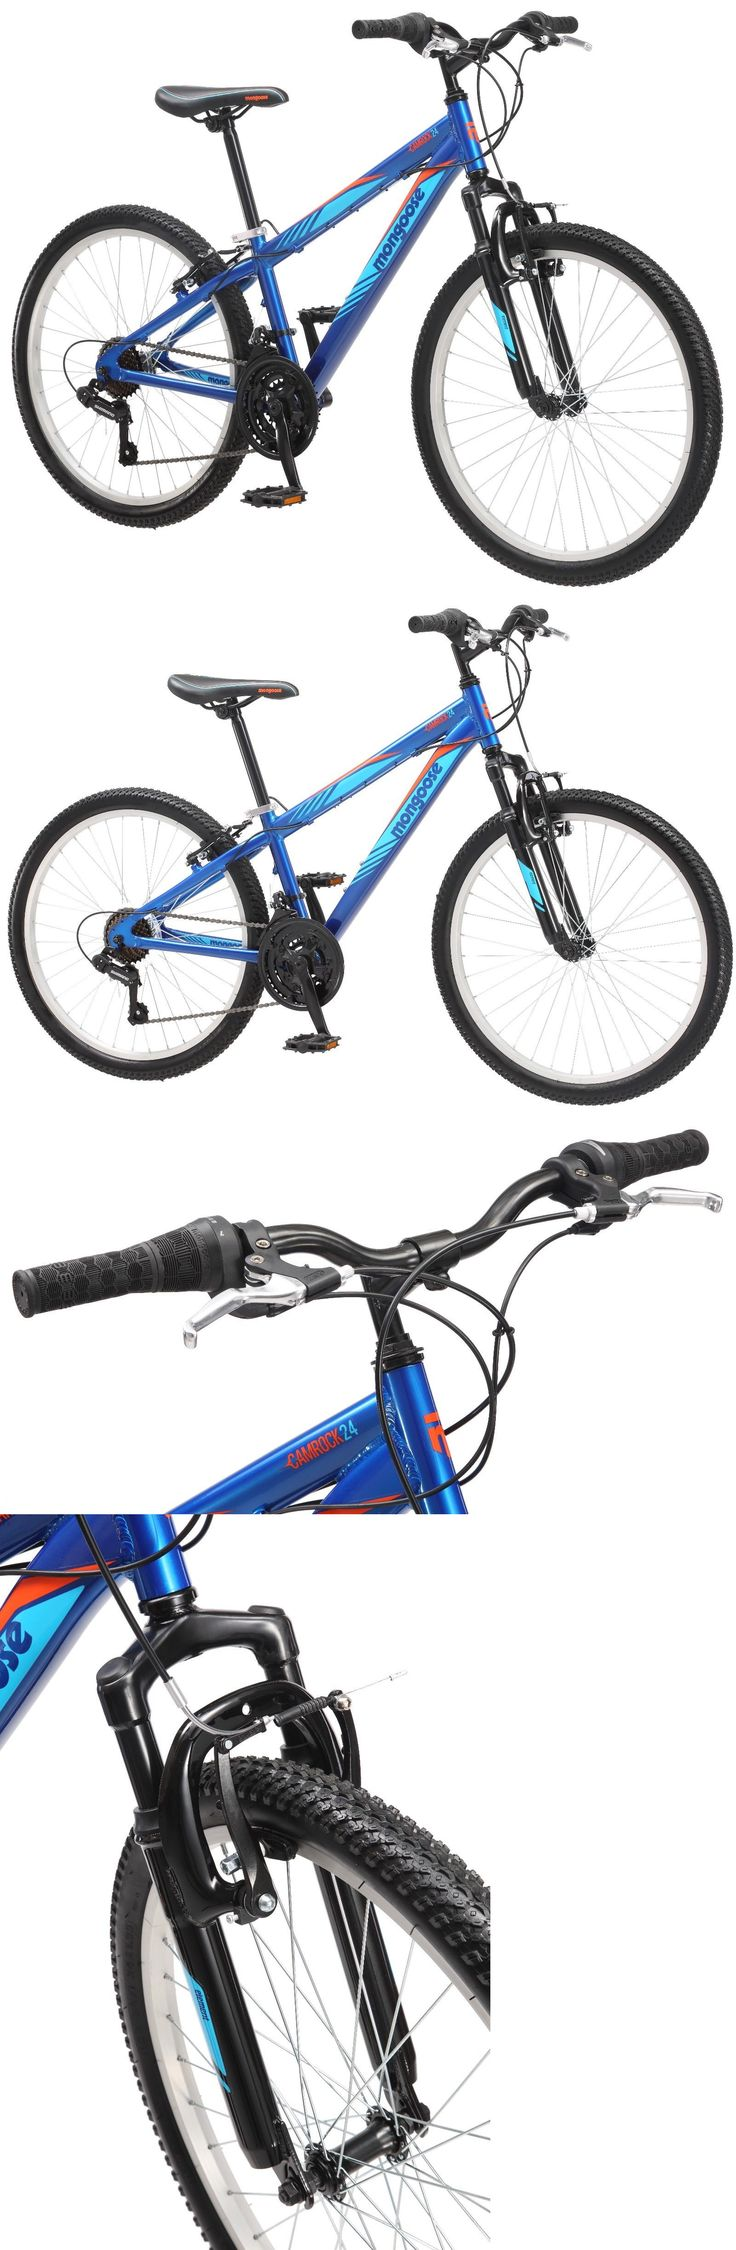 bicycles: 24 Mongoose Camrock Boy S Mountain Bike, Blue -> BUY IT NOW ONLY: $109.99 on eBay!